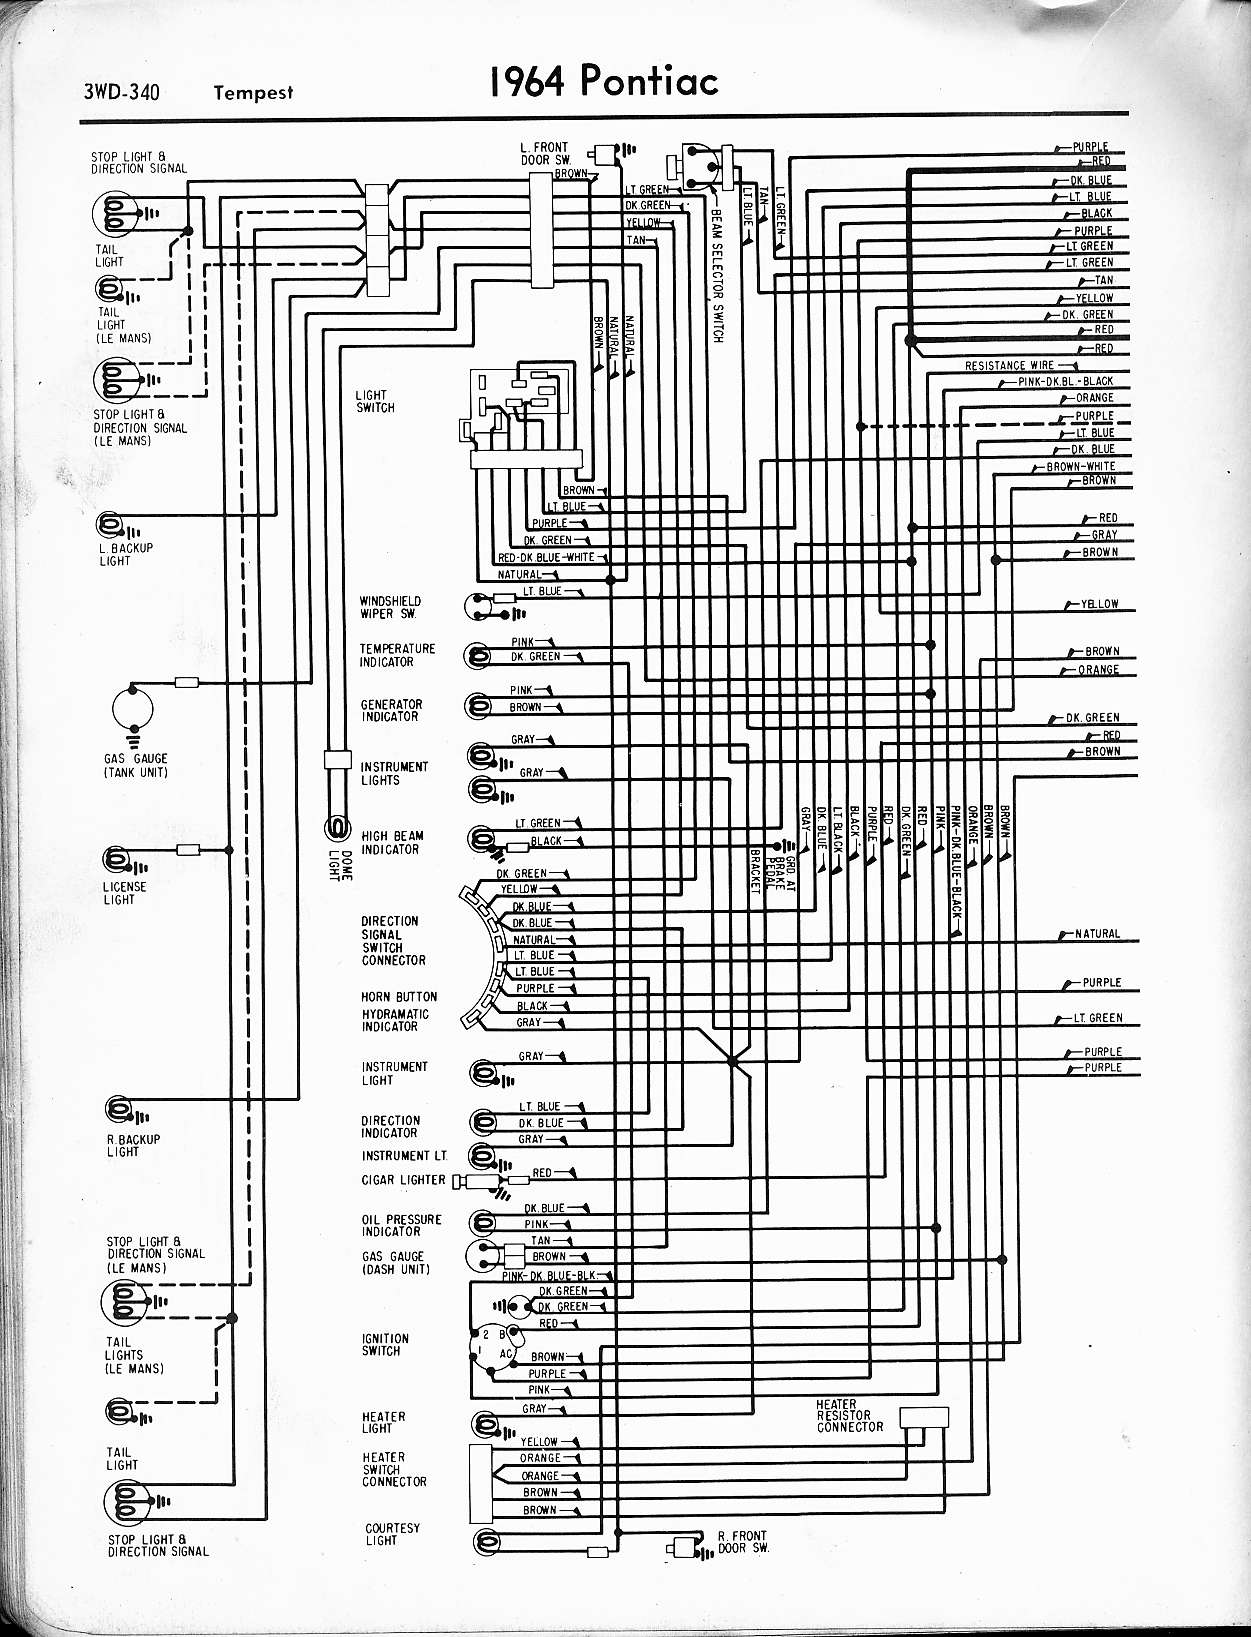 1966 Pontiac Fuse Box Great Design Of Wiring Diagram 1973 C10 1965 Gto Schemes U2022 Rh Jarsamsterdam Com 1964 1968